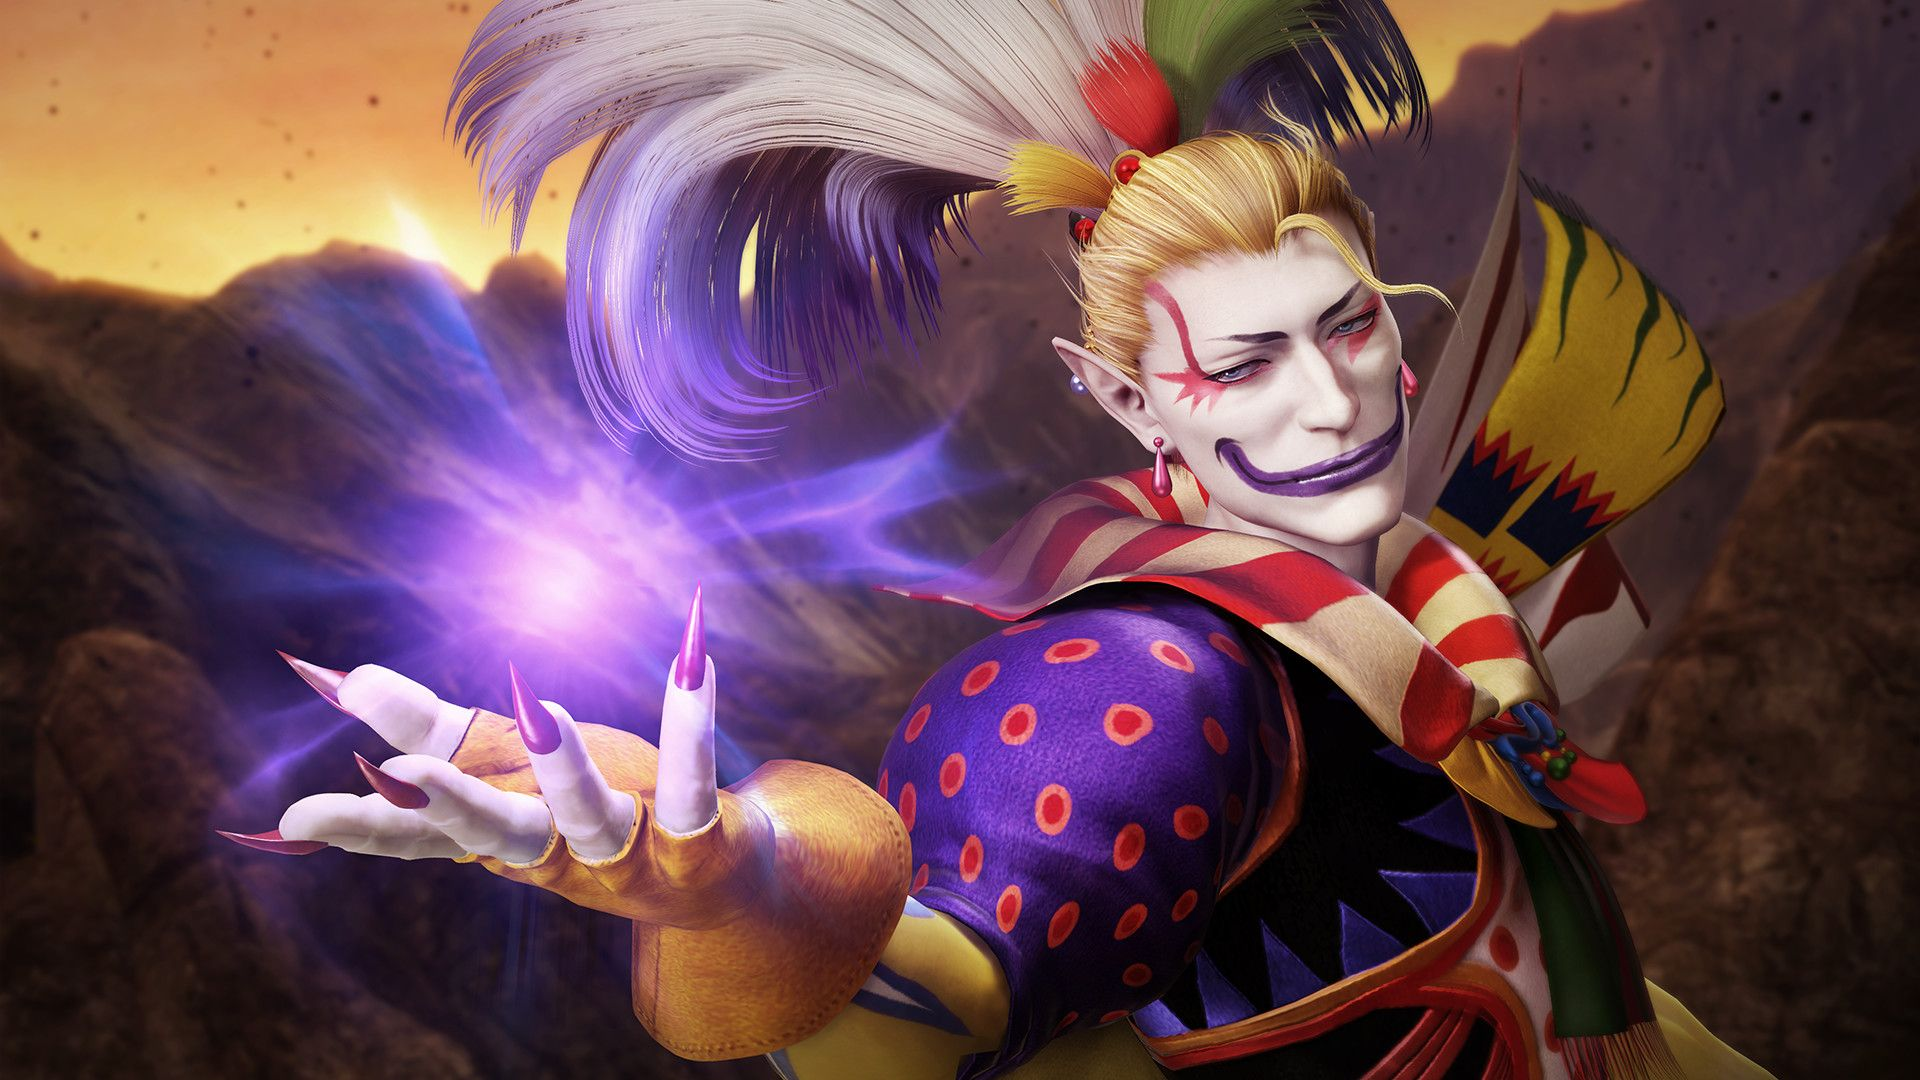 Final Fantasy 6: 10 Of Kefka's Most Maniacal Quotes